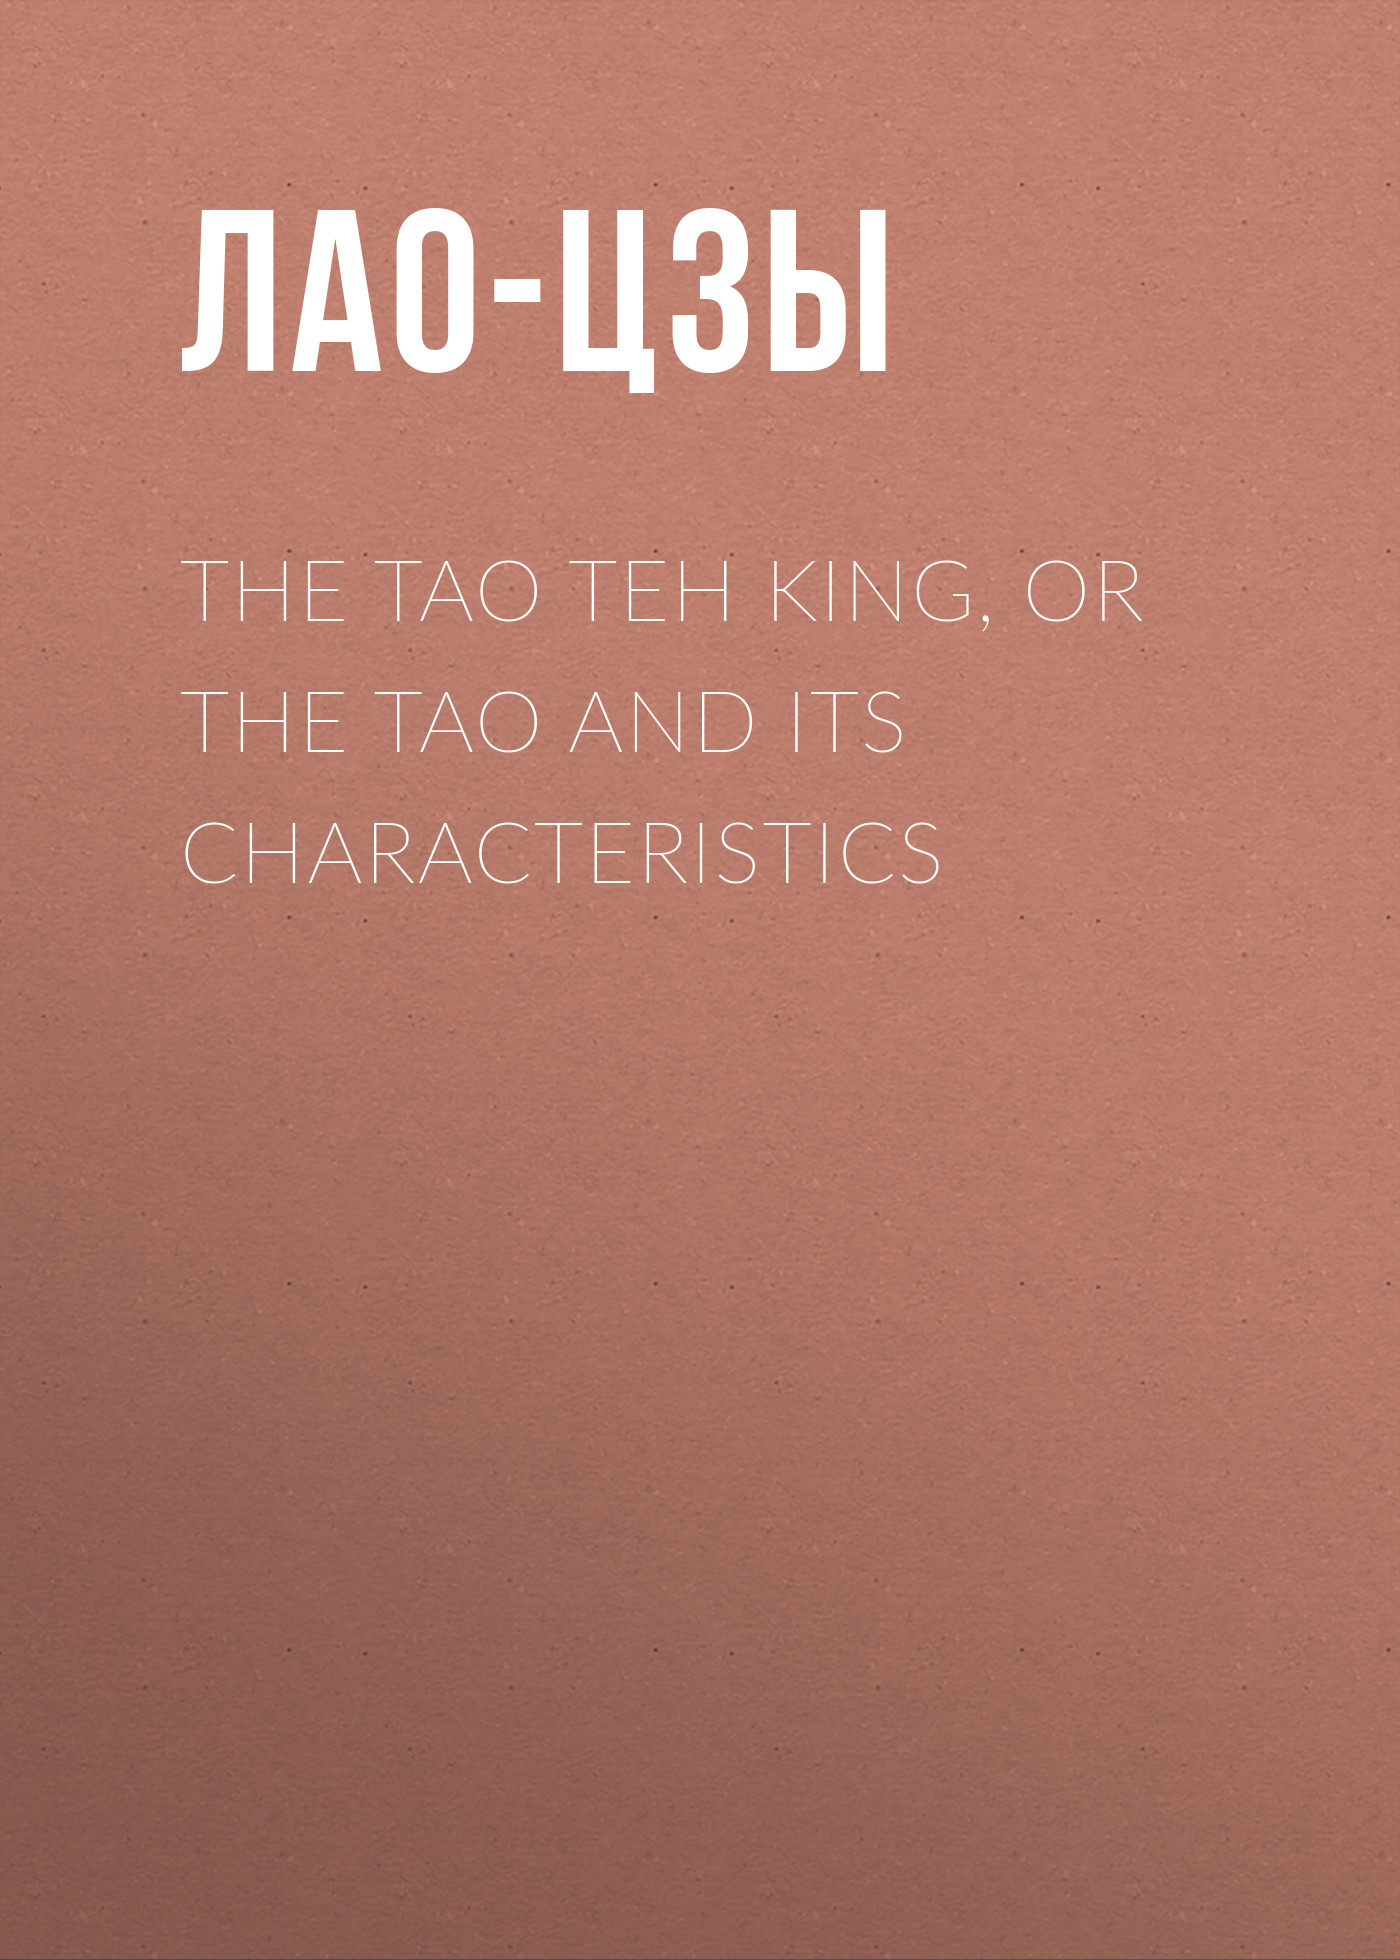 Лао-цзы The Tao Teh King, or the Tao and its Characteristics tigergrip industrial safety shoes cover for boot protective rubber overshoes non slip lightweight steel toe cap cover work shoe